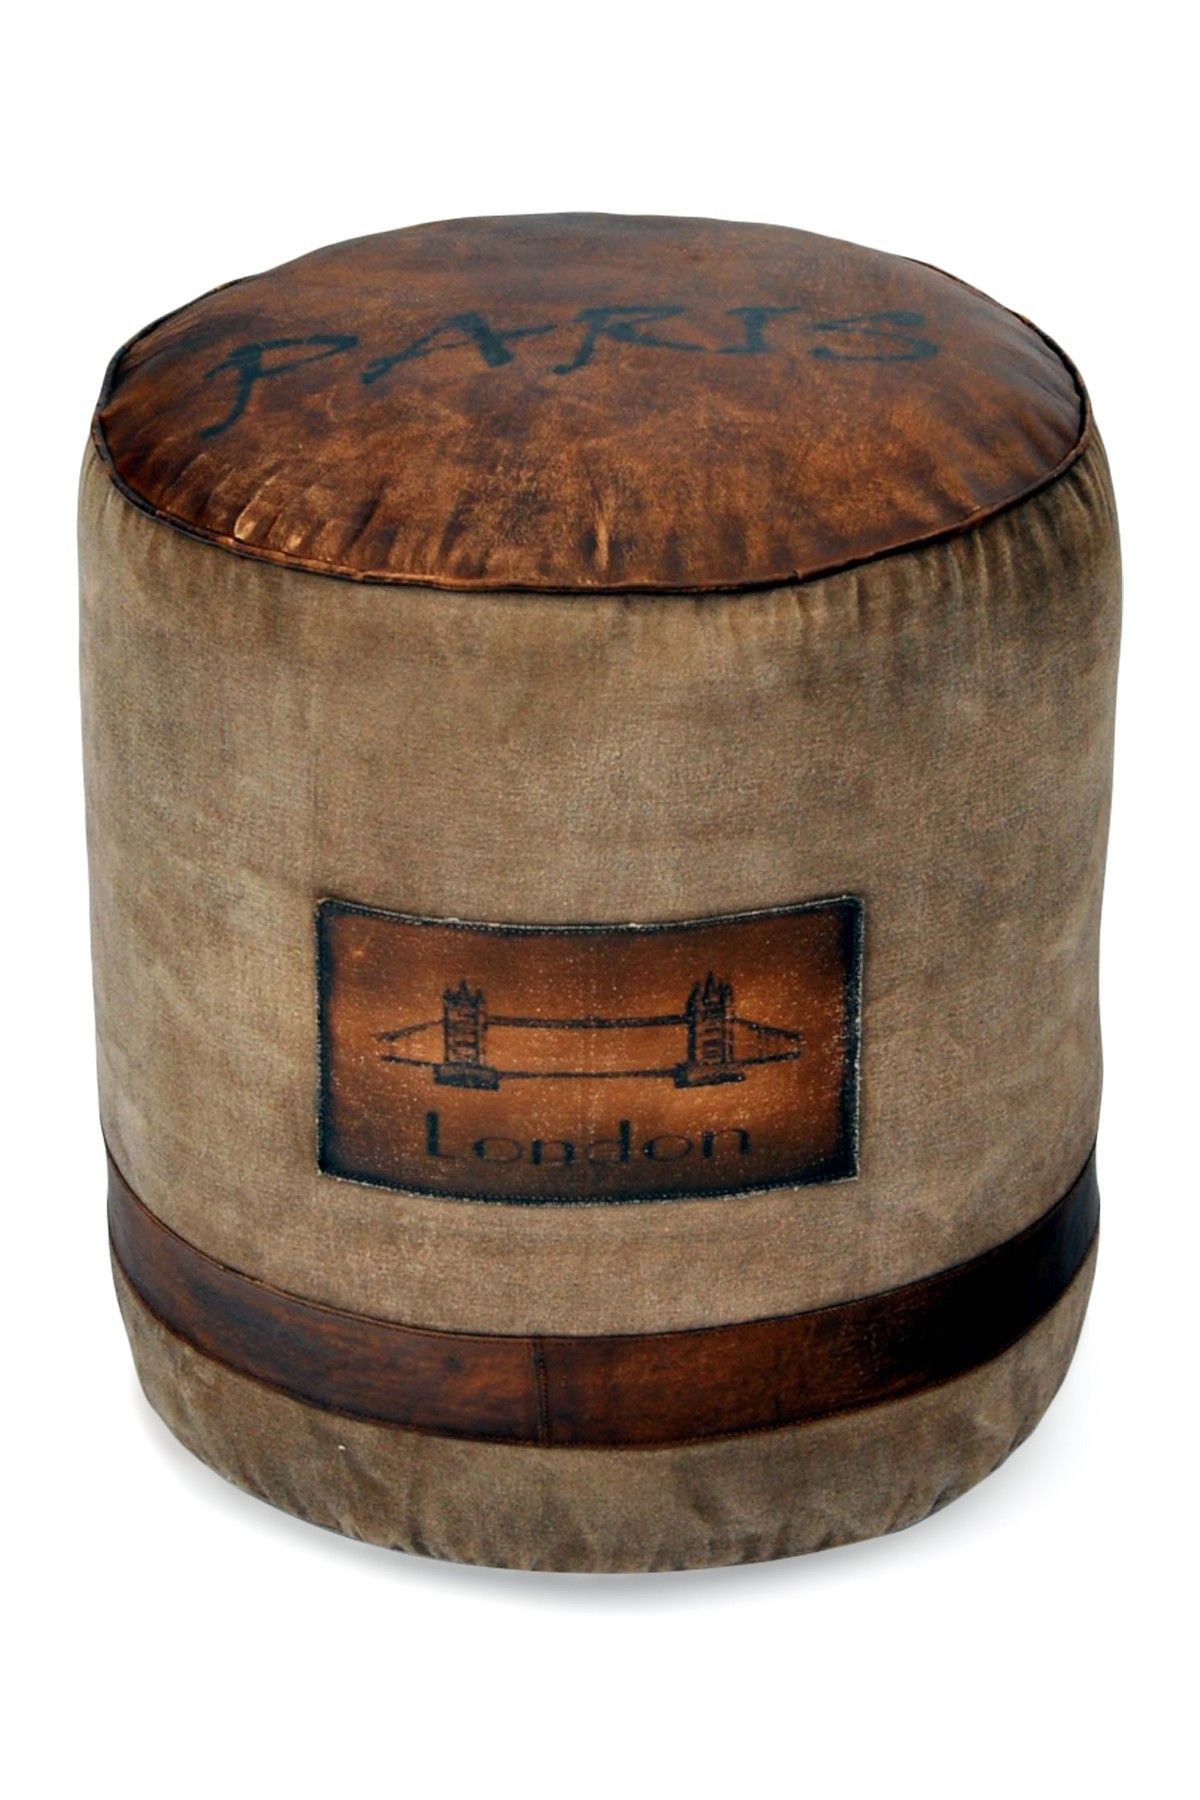 Exceptional Jetsetter Tan U0026 Brown Pouf In Recycled Canvas And Distressed Leather With  Vintage Inspired Lettering.